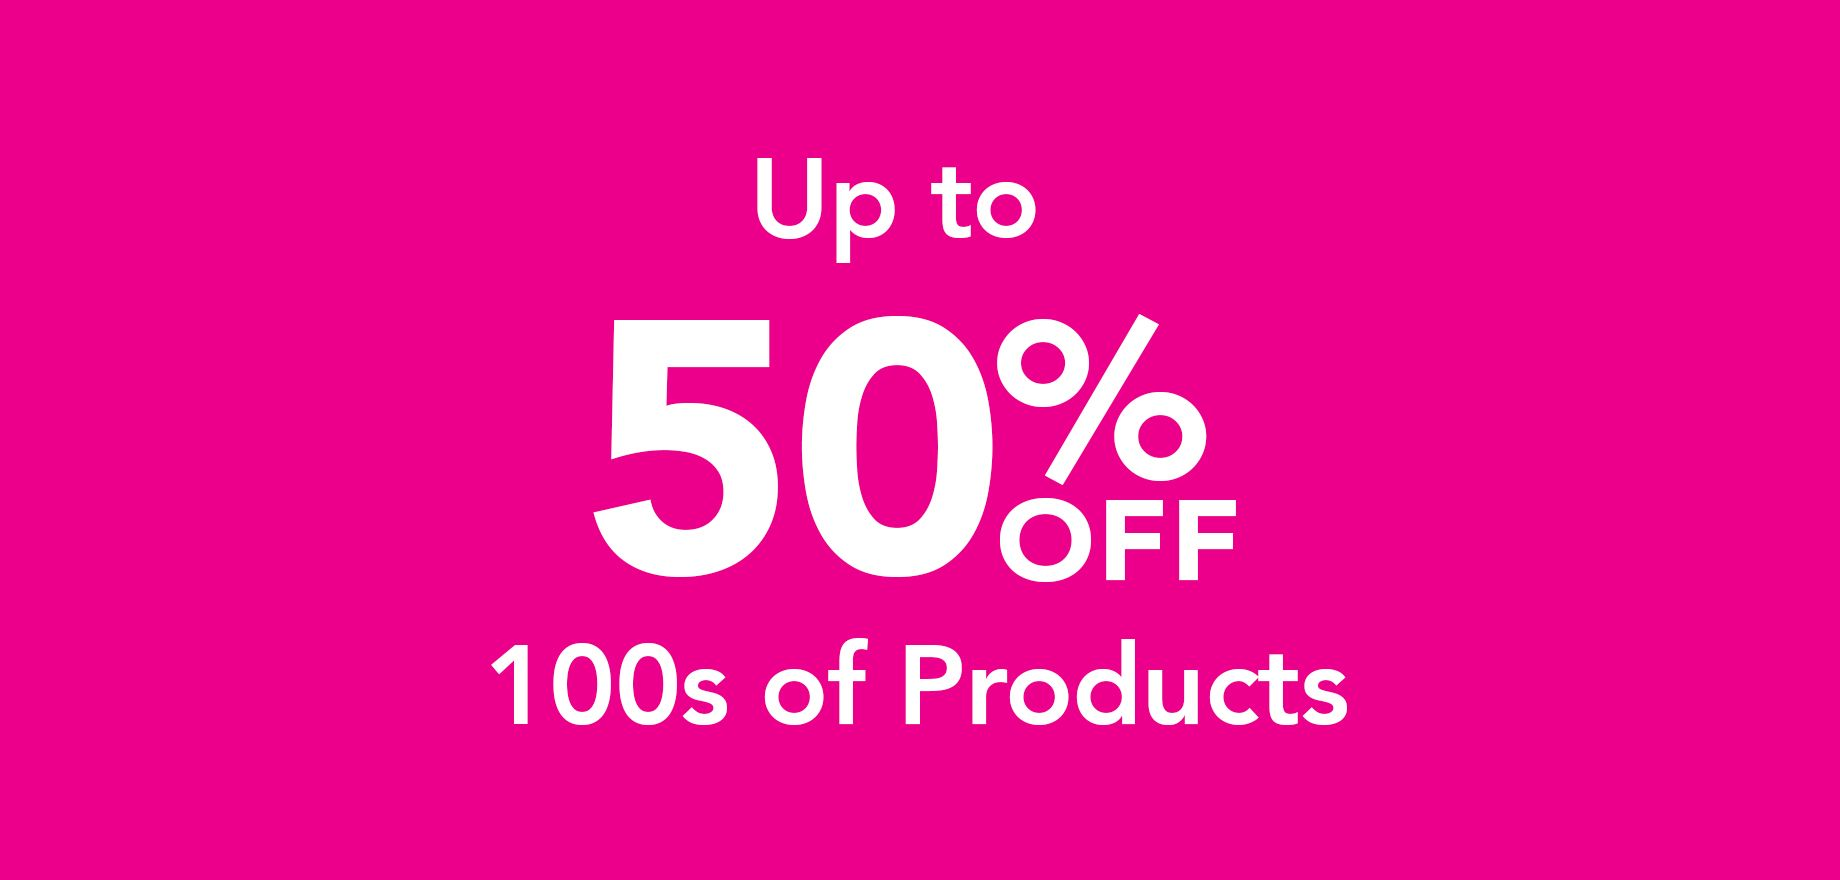 Up to 50% off 100s of products